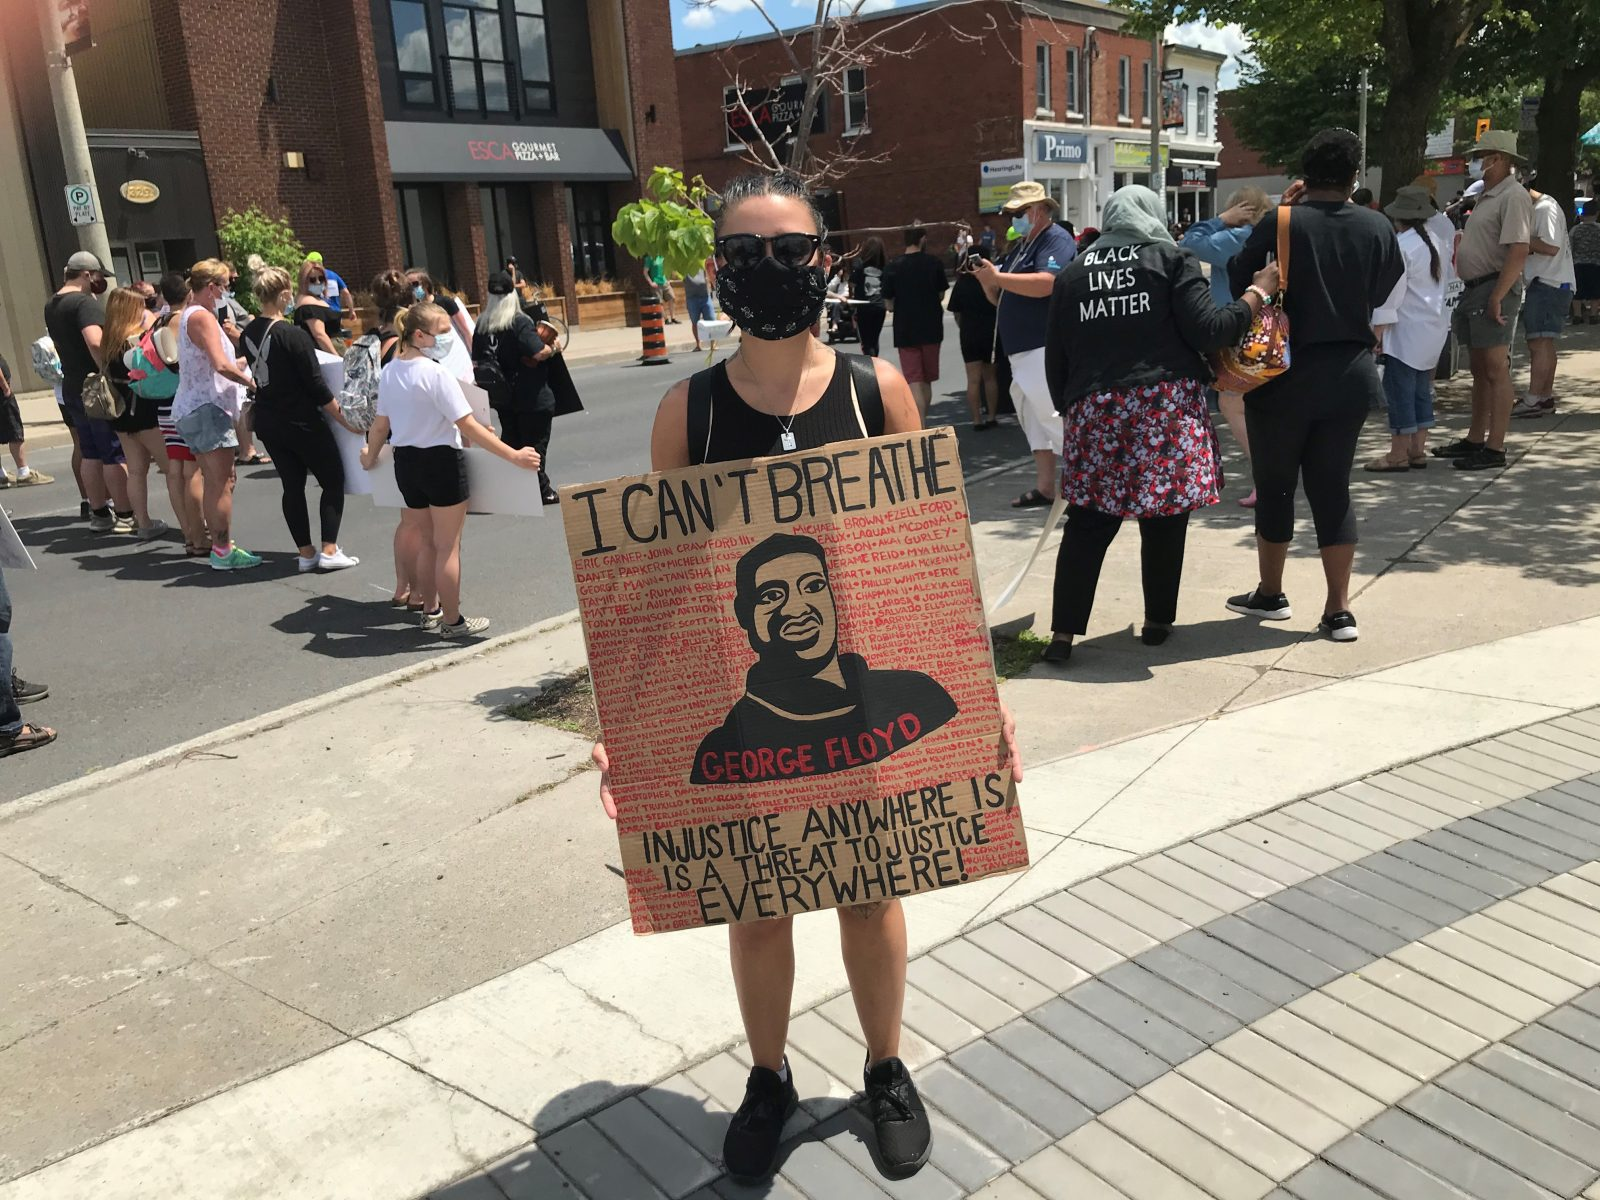 SLIDESHOW: Peaceful Black Lives Matter demonstration in Cornwall